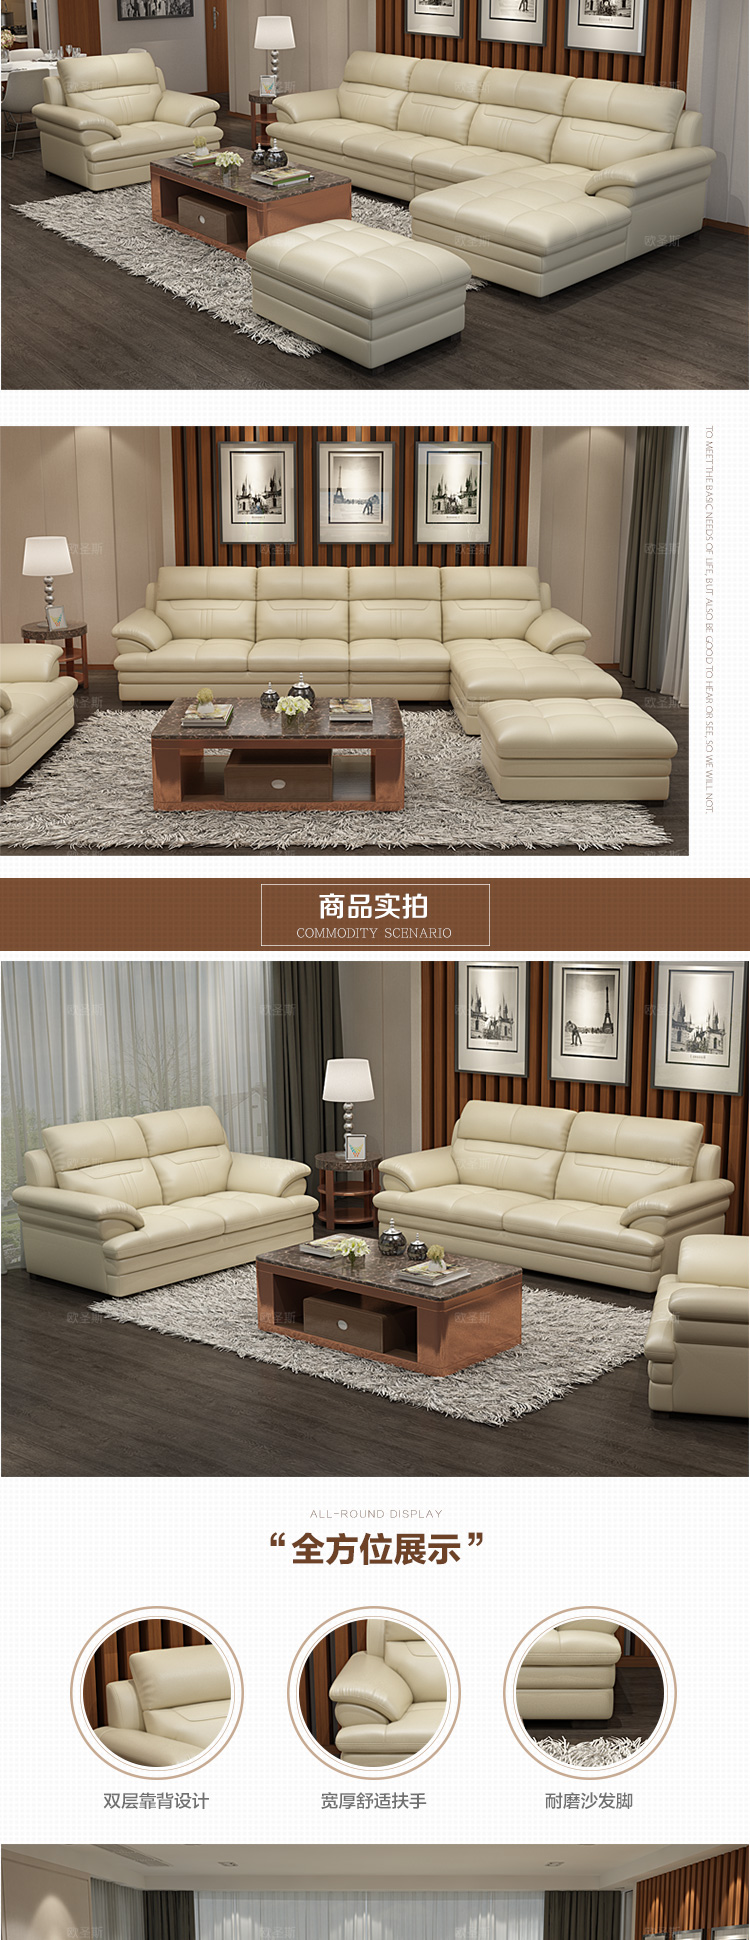 New Style Sofa Set Design Us 1187 5 5 Off 2017 New Design Italy Modern Leather Sofa Sectional Corner Soft Comfortable Livingroom Genuine Real Leather Sofa Set 660 In Living